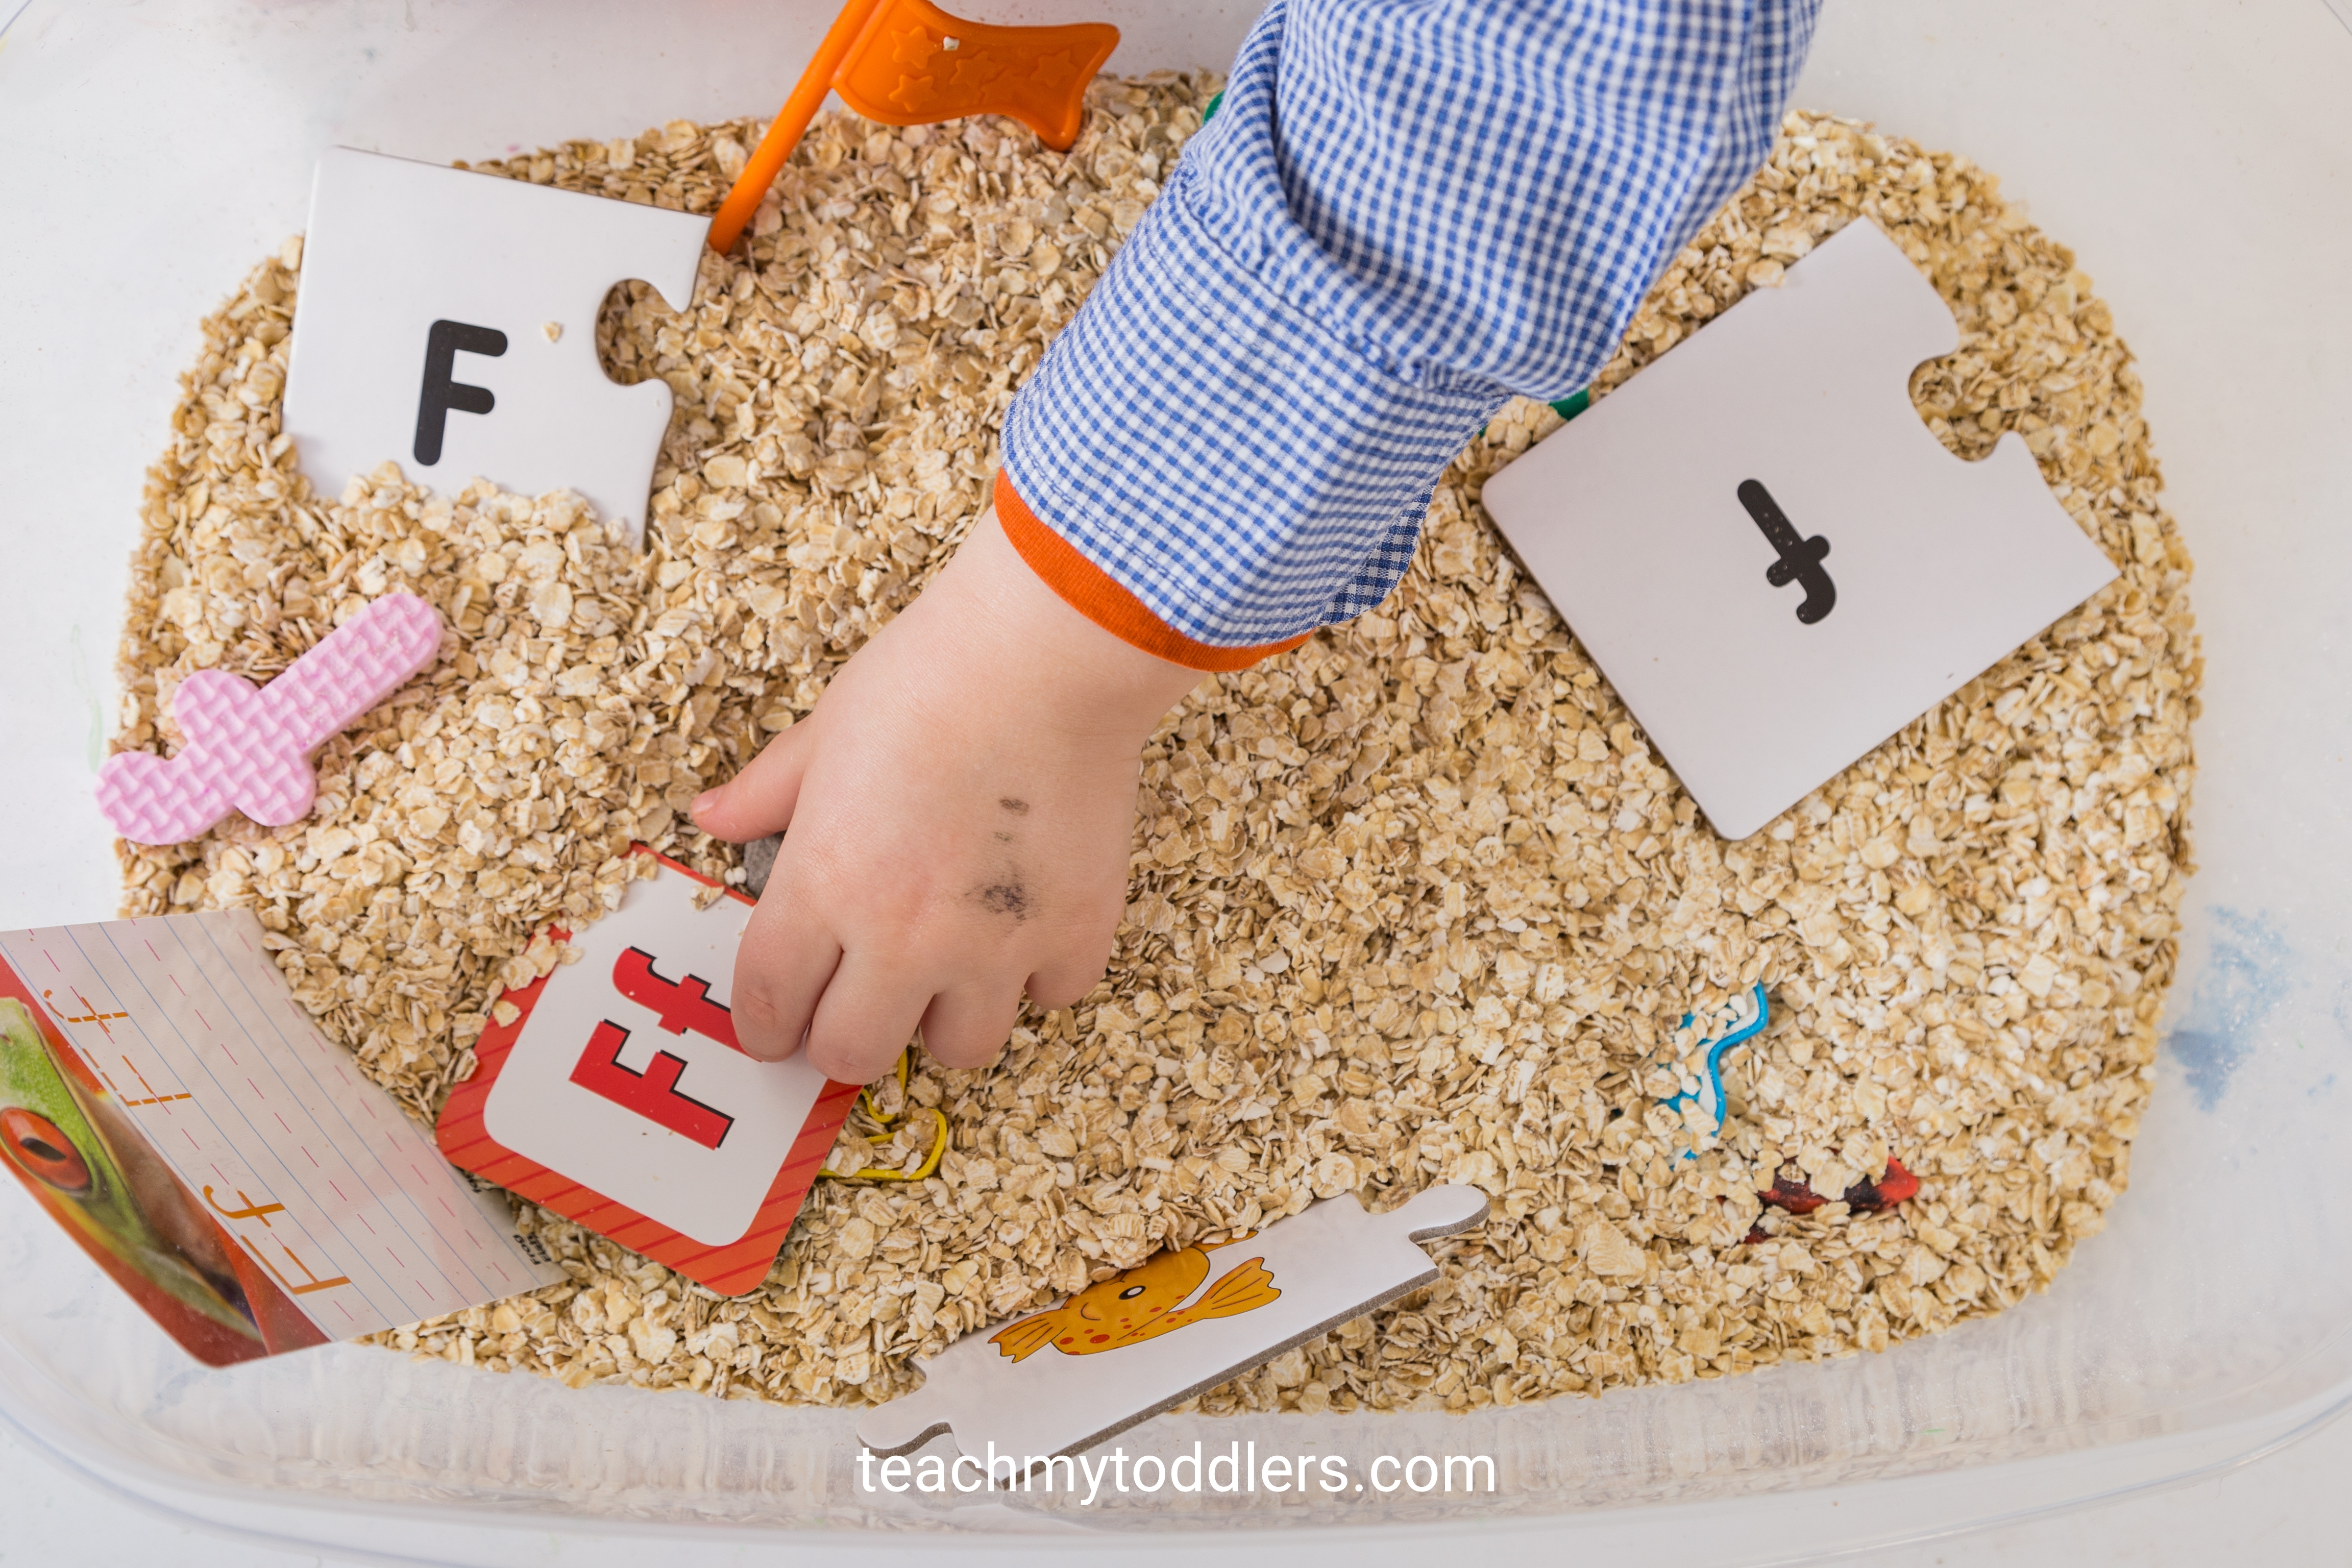 Find out how to use these f is for farm activities to teach toddlers the letter f